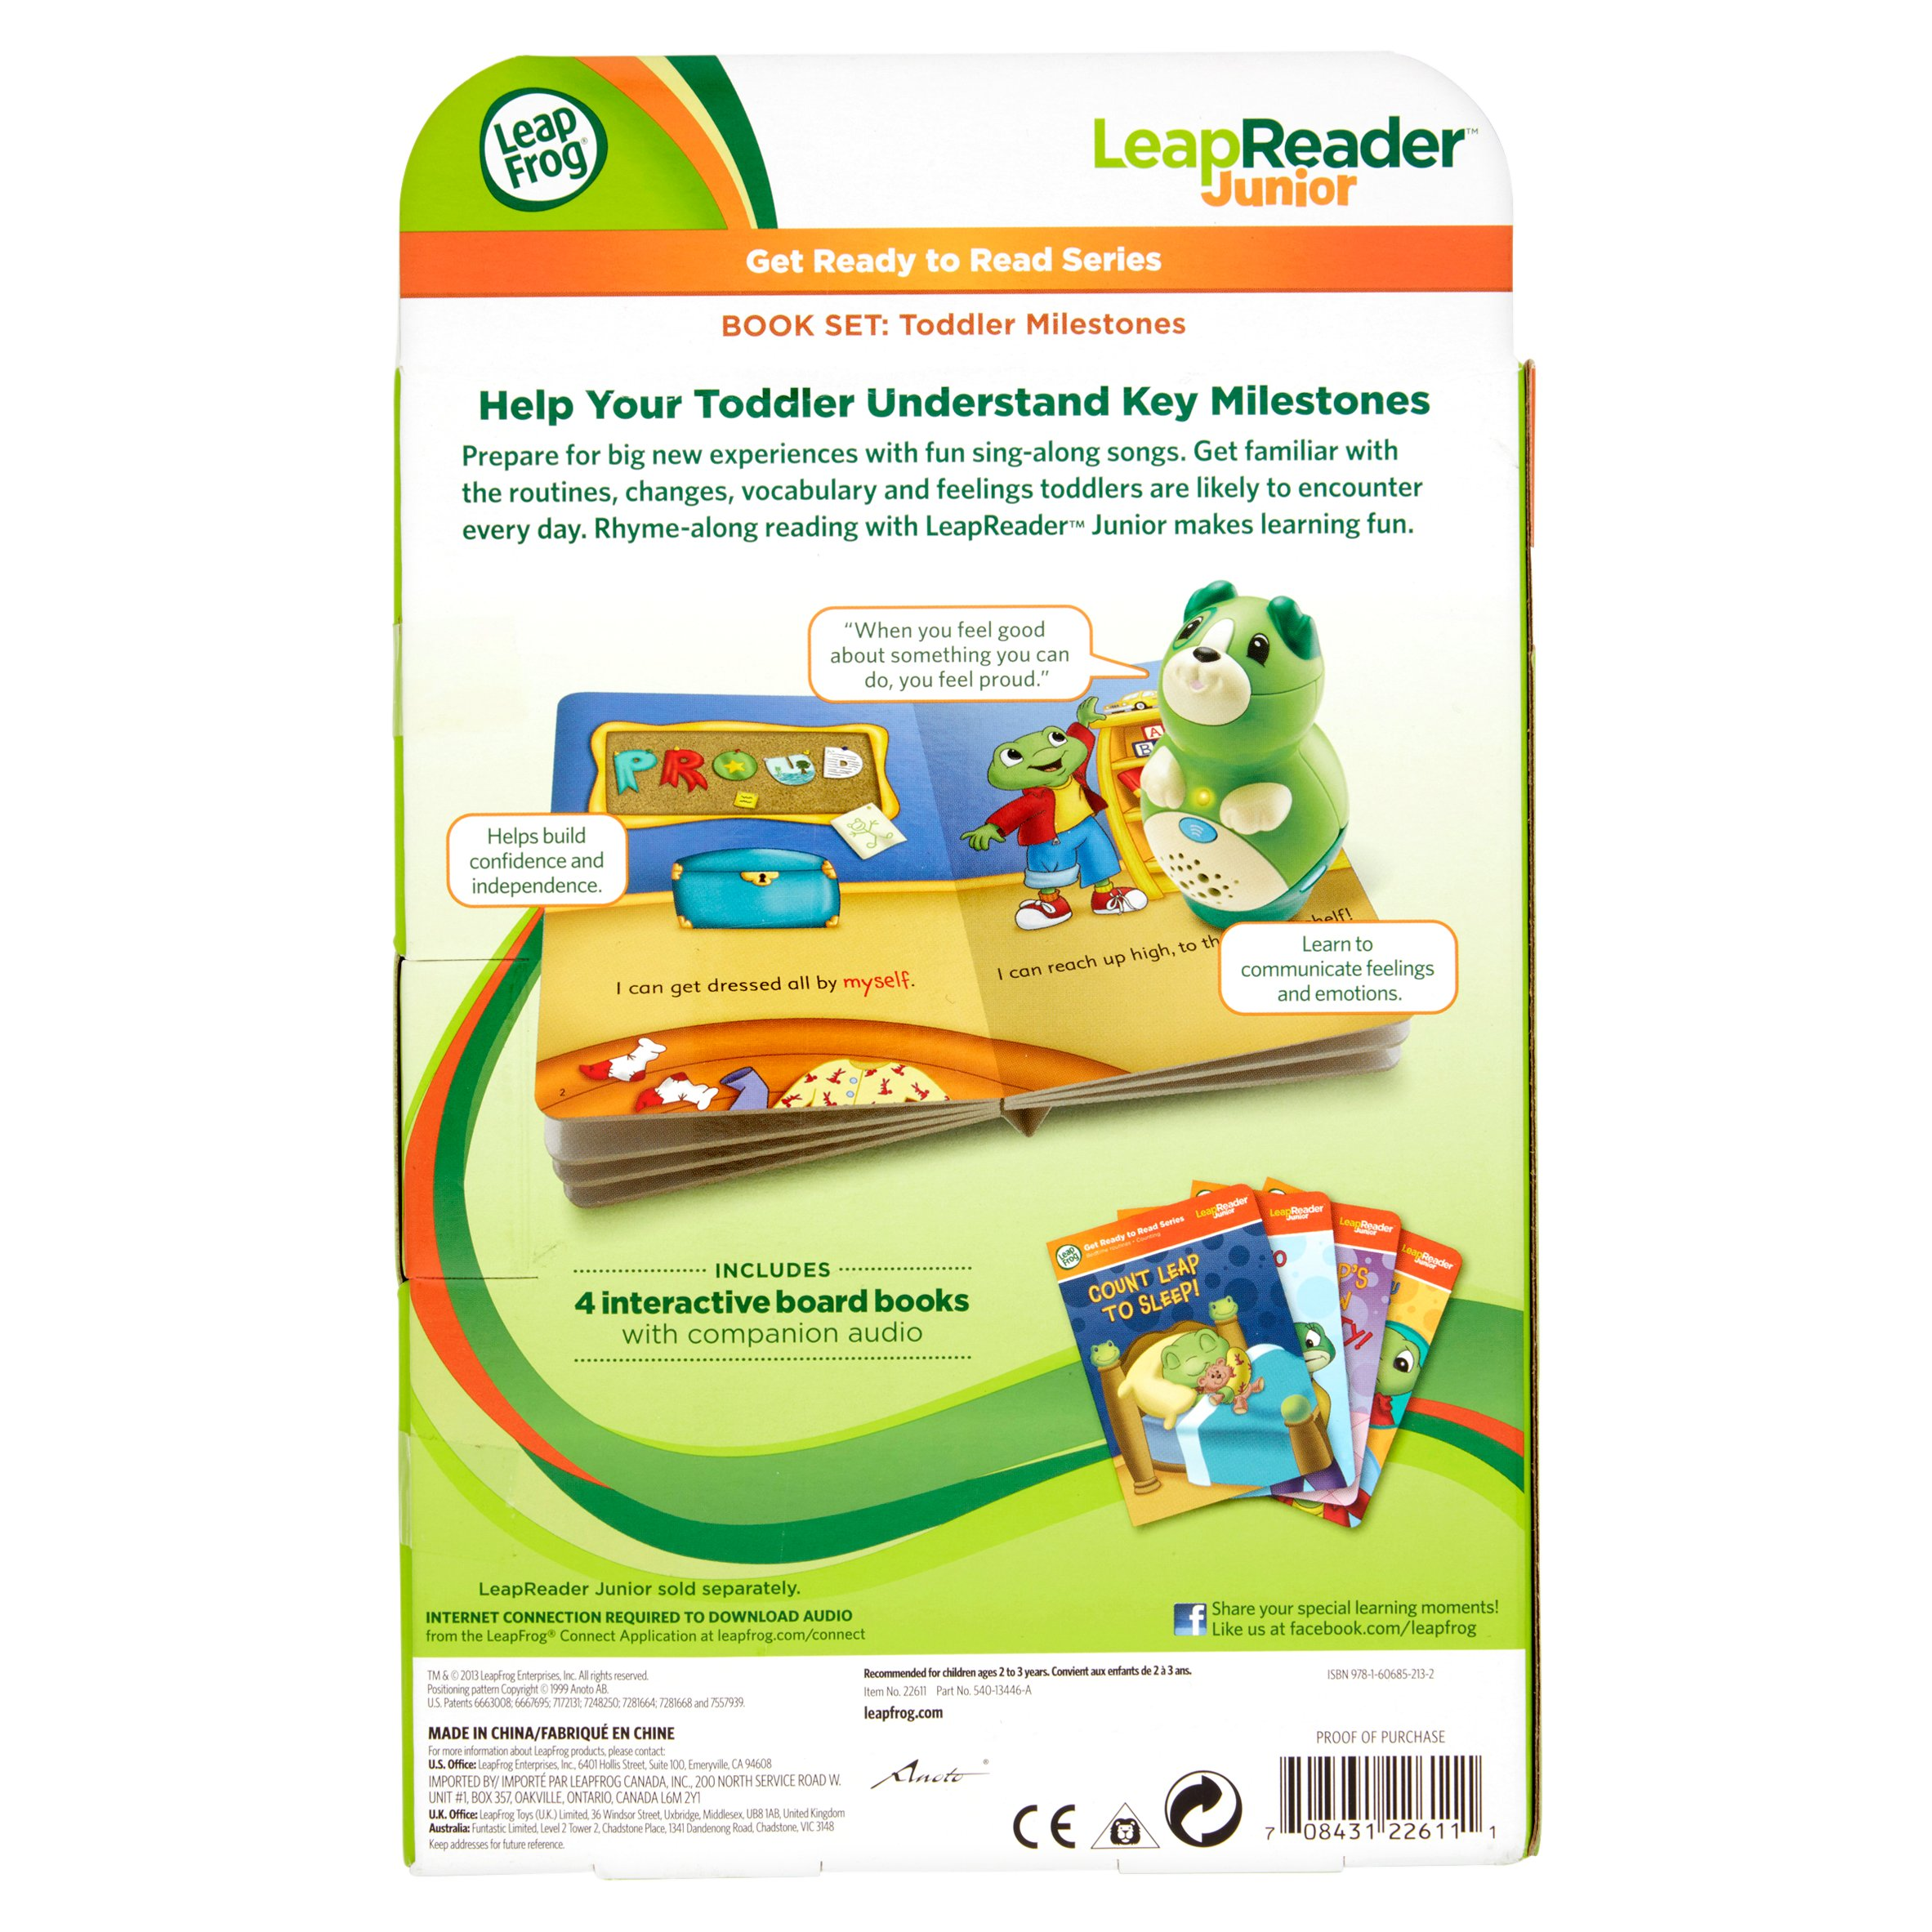 The Companion Audio For Your Book At Leapfrog.com/connect